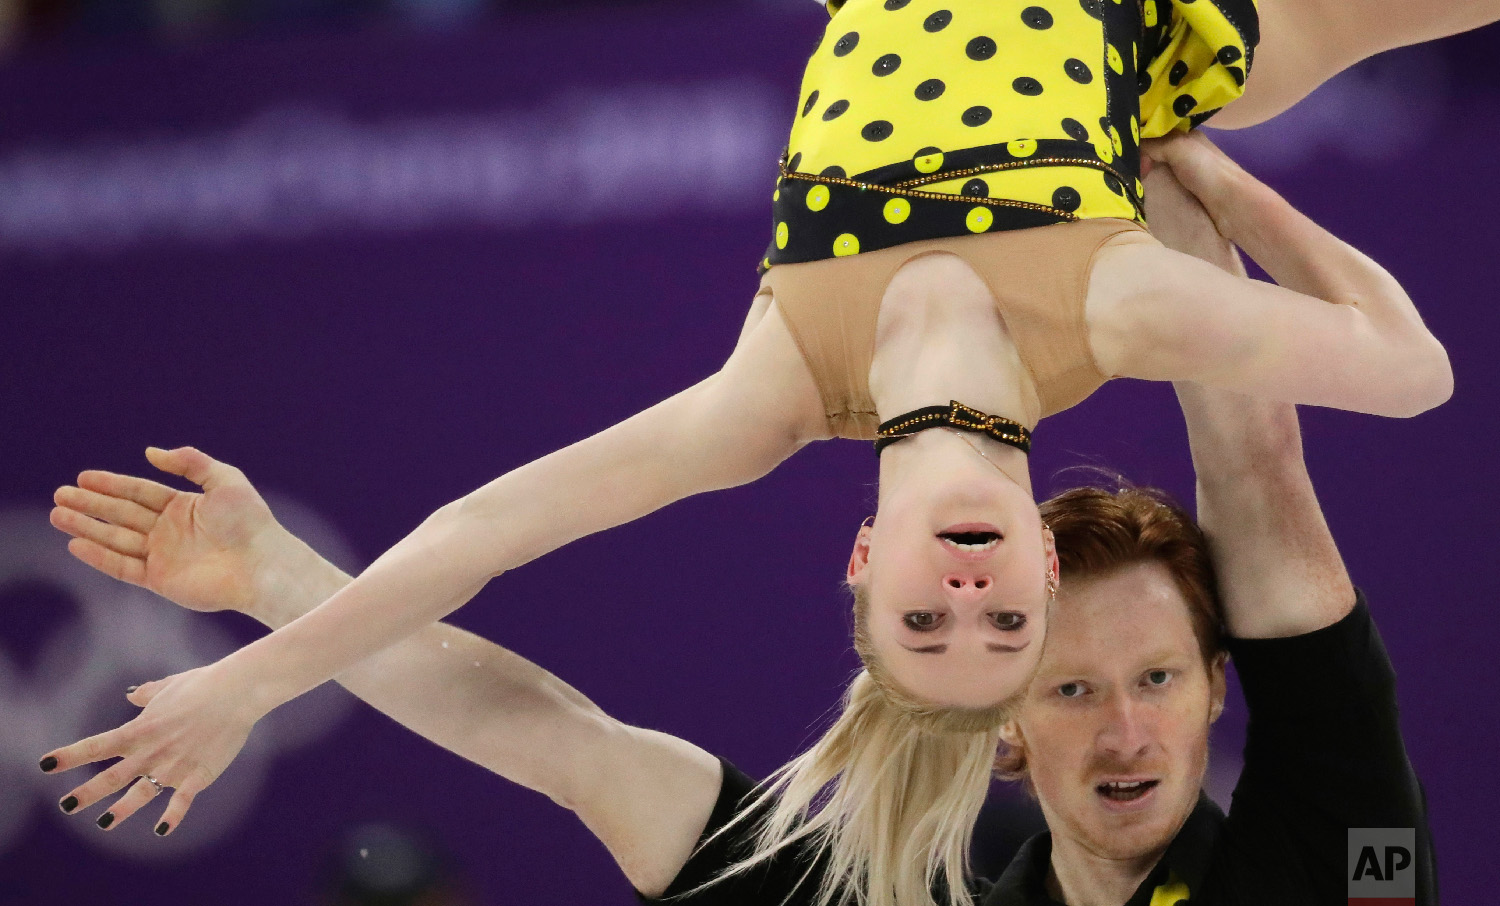 Russian skaters Evgenia Tarasova and Vladimir Morozov perform in the pairs free skate figure skating final in the Gangneung Ice Arena at the 2018 Winter Olympics in Gangneung, South Korea, Thursday, Feb. 15, 2018. (AP Photo/Bernat Armangue)